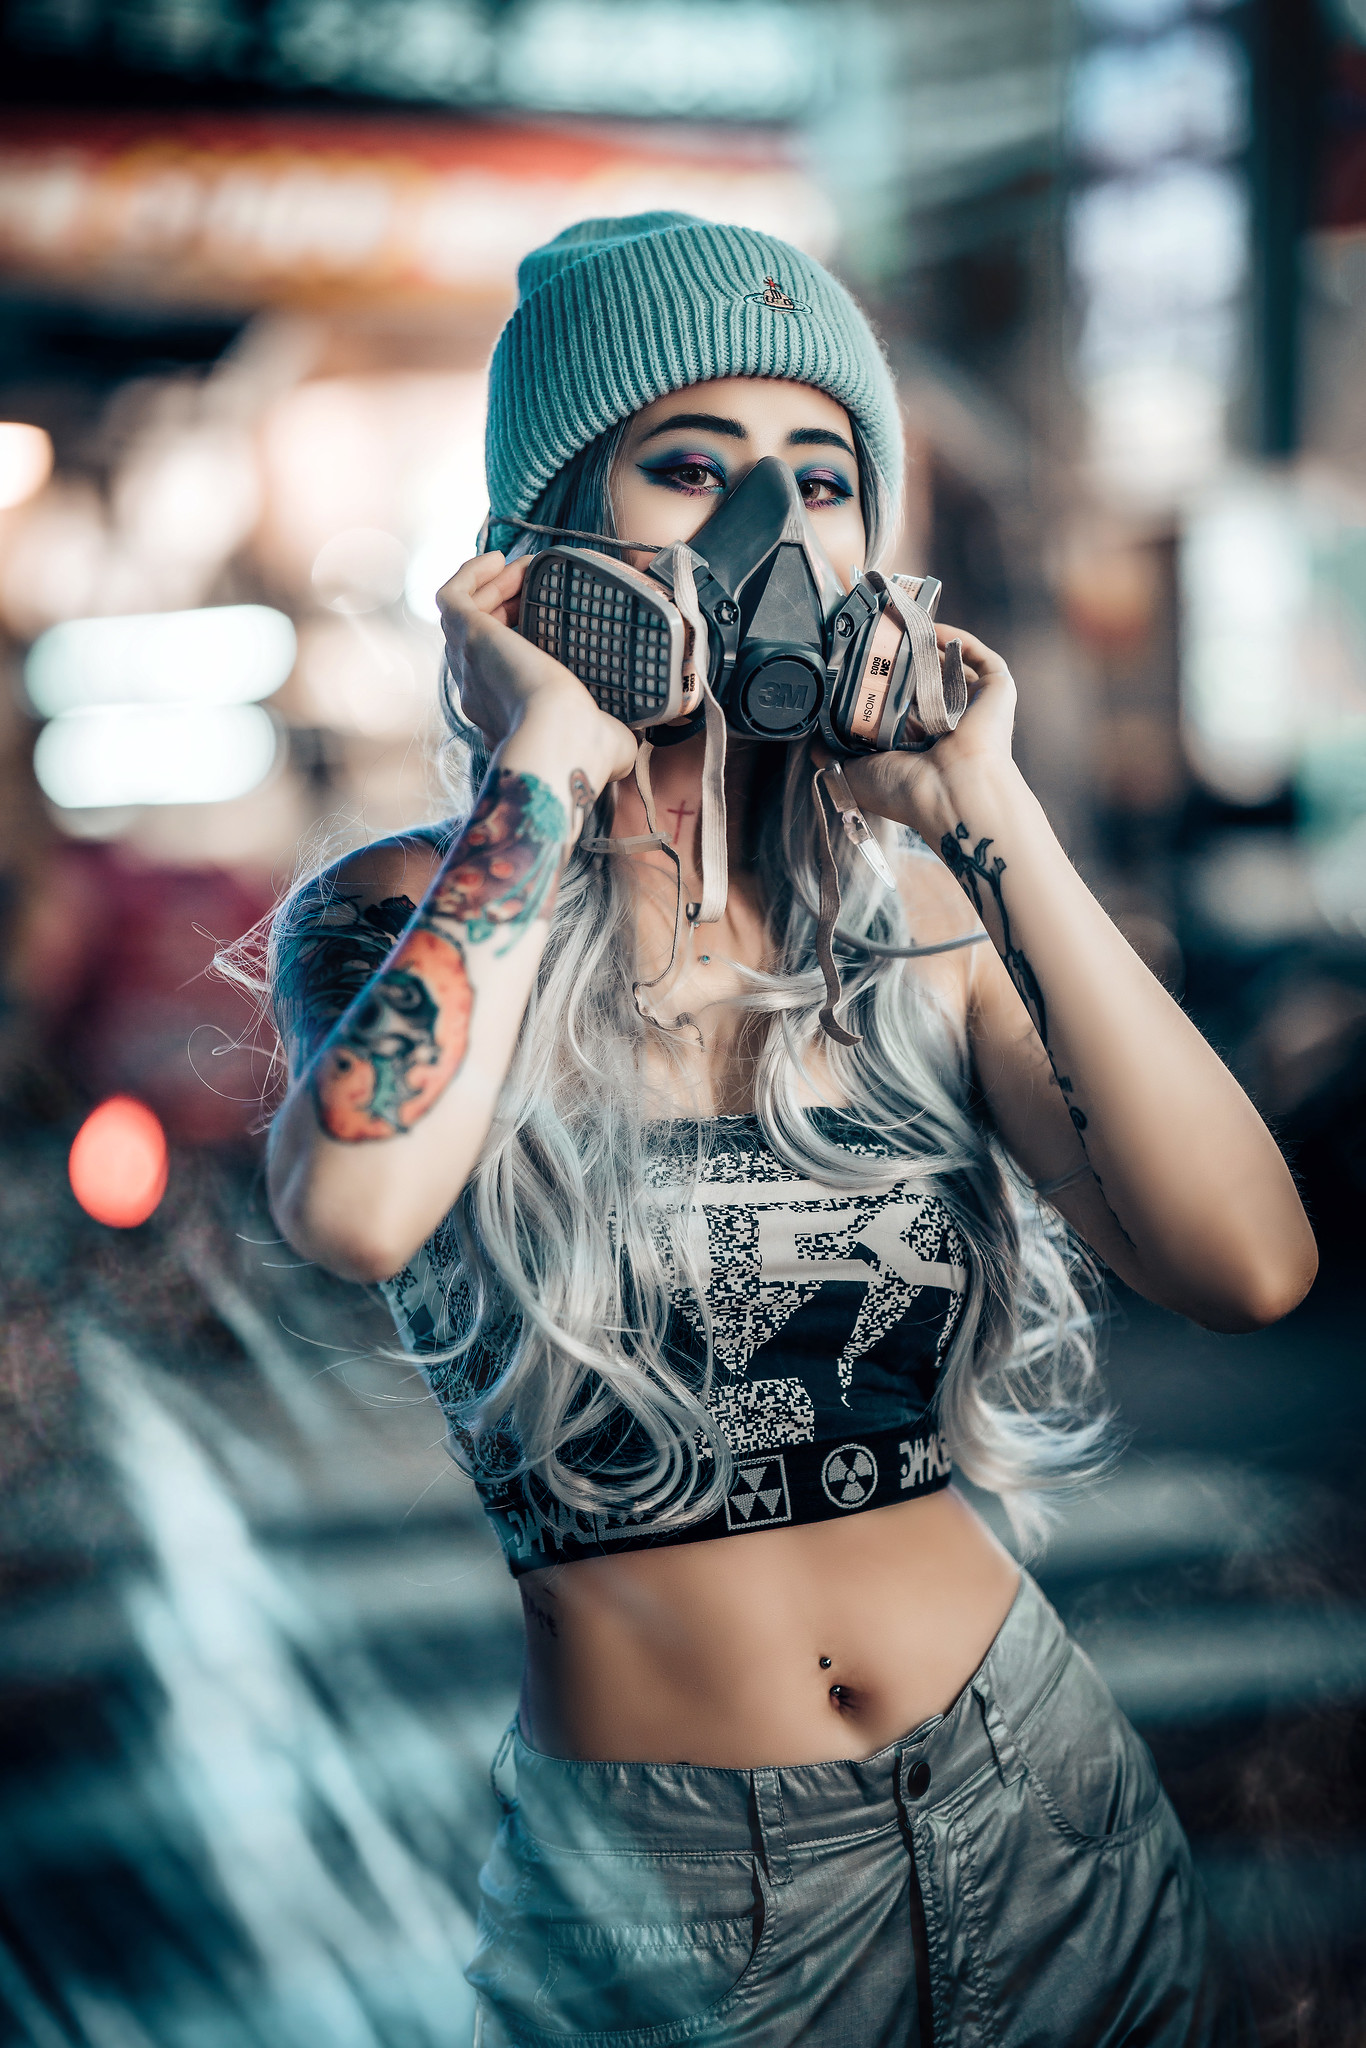 Asian Model Women Long Hair Dyed Hair Inked Girls Mask Gas Masks Looking At Viewer Bare Midriff Stan 1366x2048